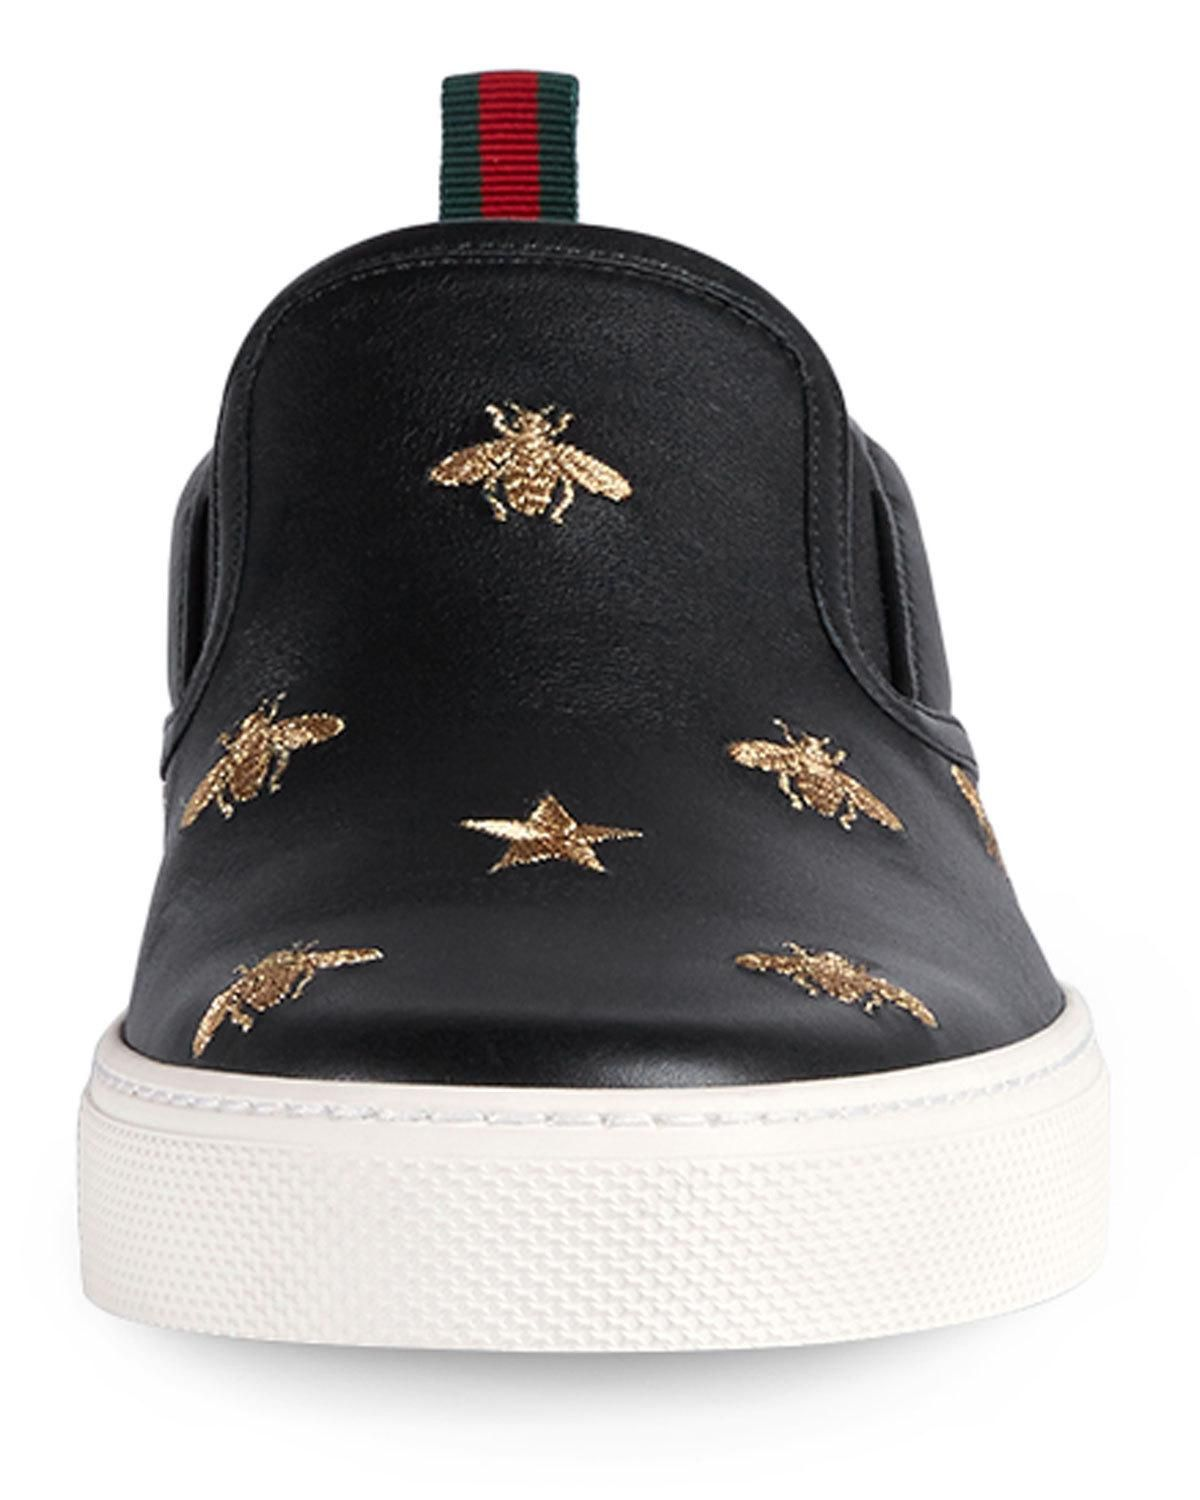 63fd62652 Men's Dublin Bee & Star Embroidered Leather Slip-On Sneakers | JUST ...